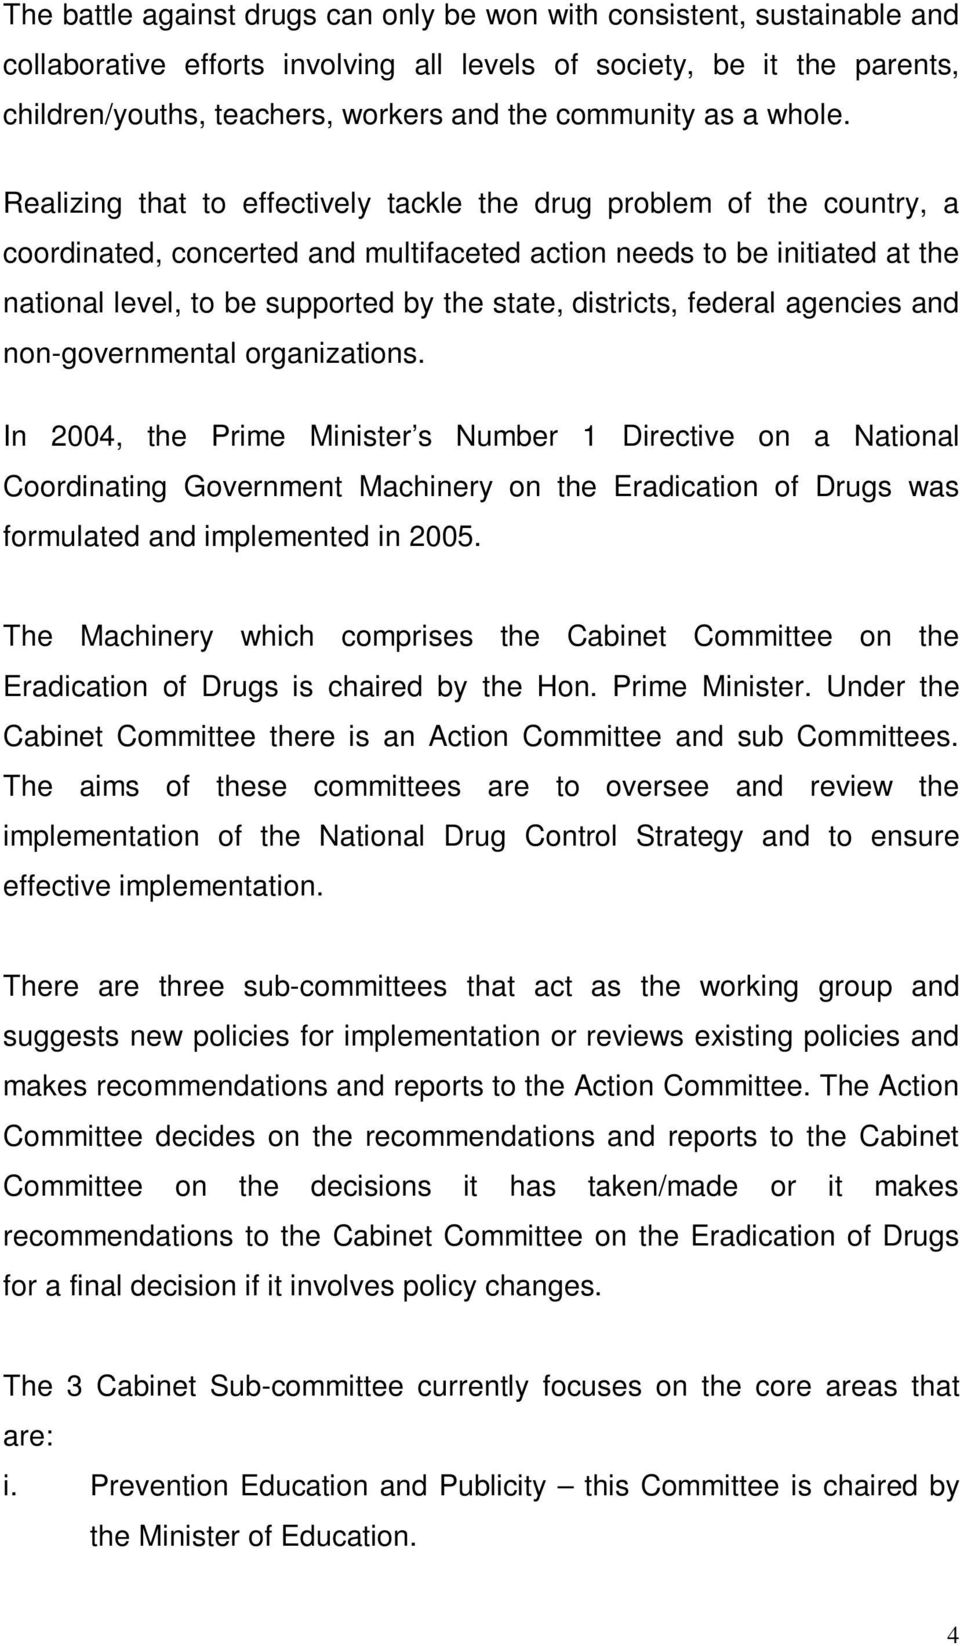 Realizing that to effectively tackle the drug problem of the country, a coordinated, concerted and multifaceted action needs to be initiated at the national level, to be supported by the state,